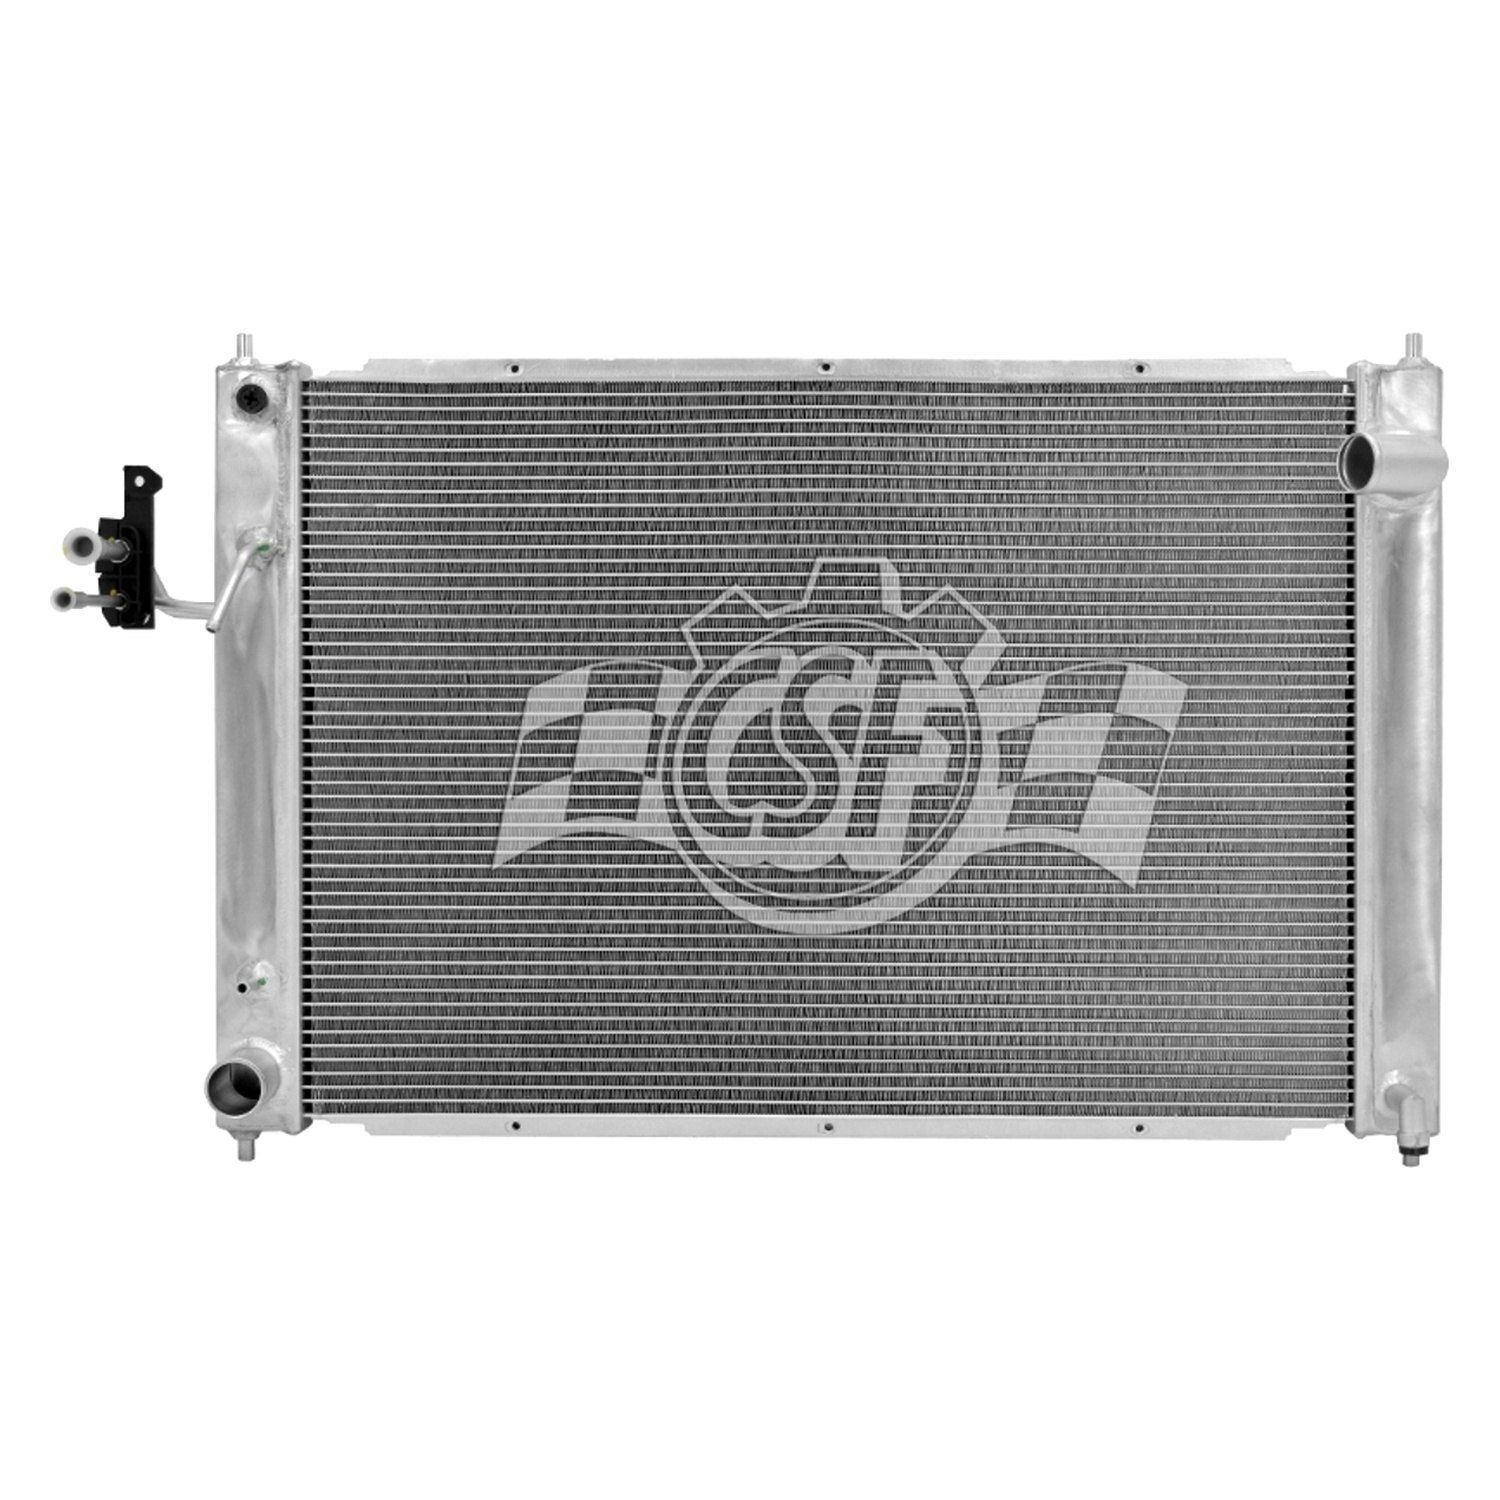 CSF Aluminum Radiator & A/C Condenser, Auto or Manual Transmission AT/MT - Nissan 370Z / Infiniti G35 G37 Q40 Q60